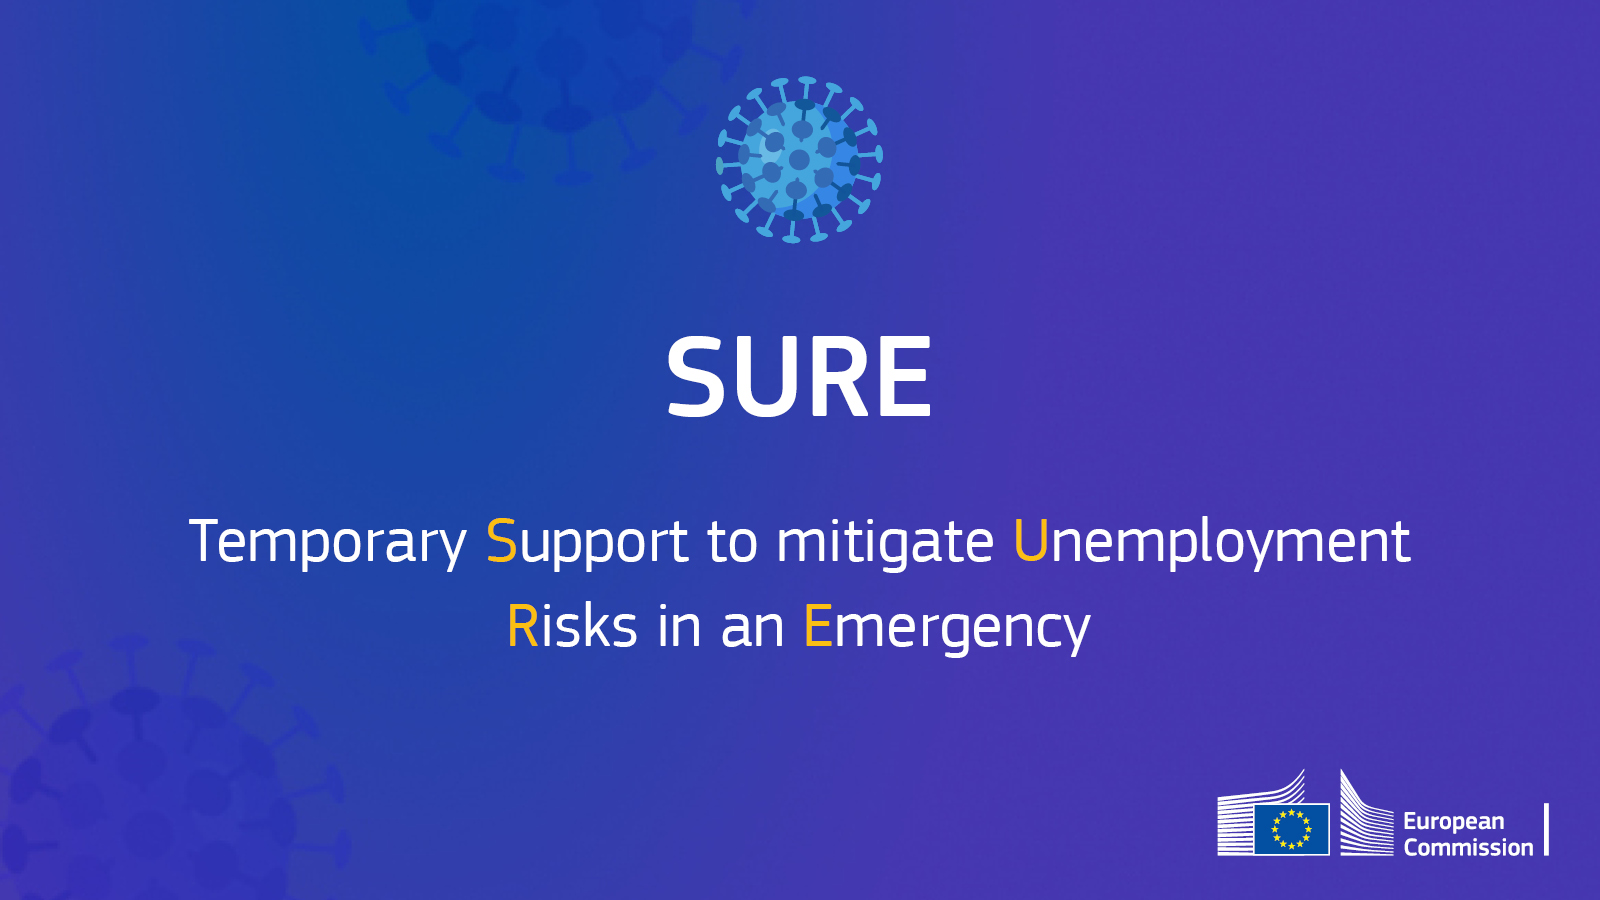 COVID-19: Council adopts temporary support to mitigate unemployment risks in an emergency (SURE)